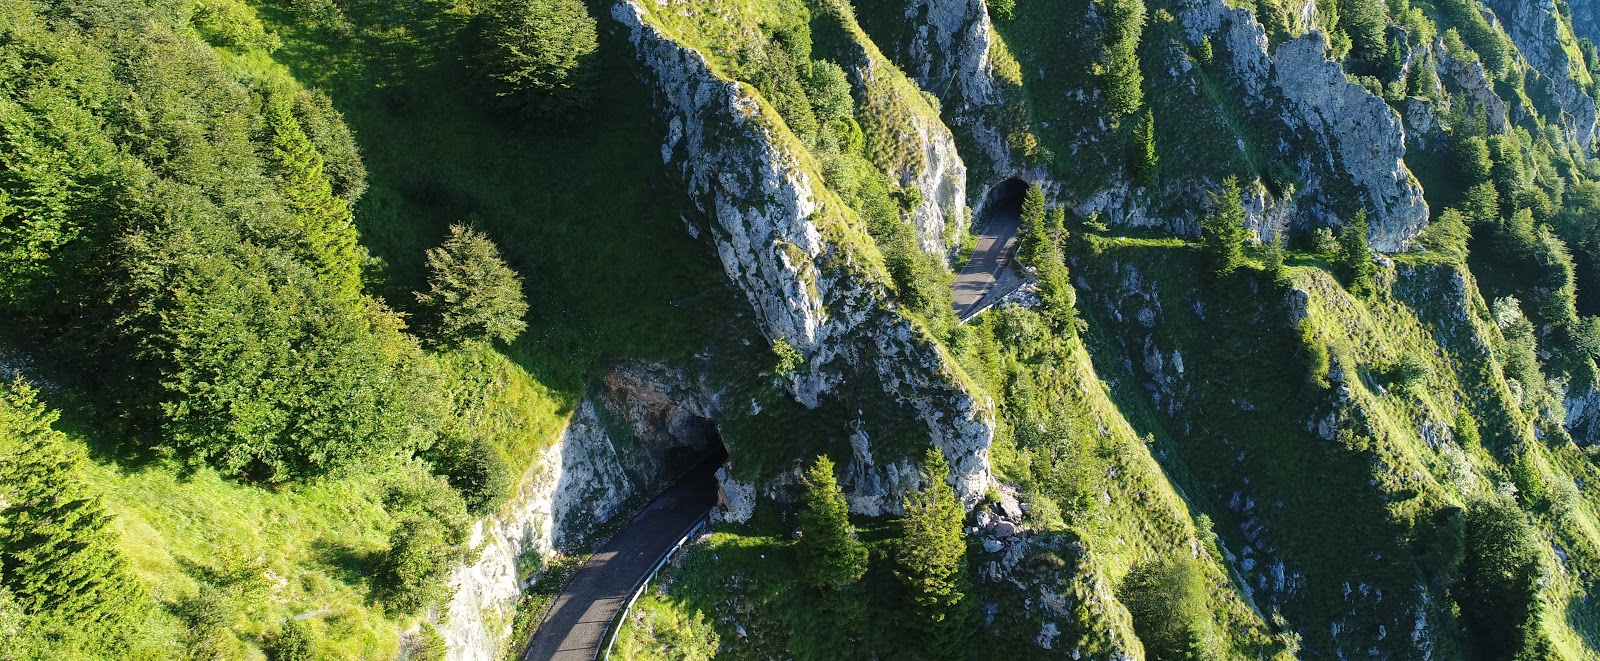 Cycling Monte Grappa - Cavaso del Tomba - aerial drone photo of tunnels and cliff